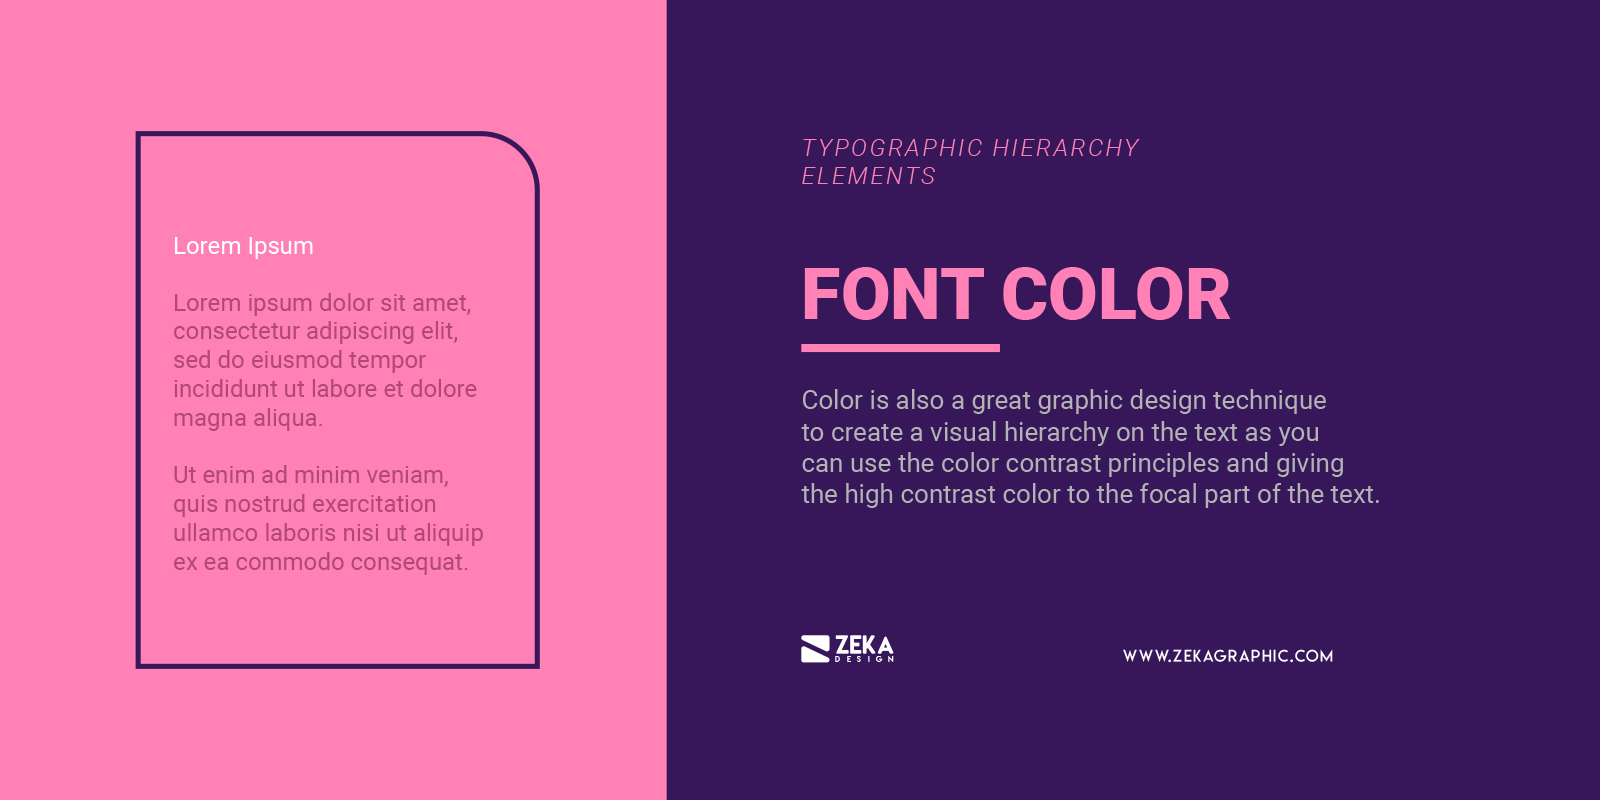 Font Color for Typographic Hierarchy in Graphic Design